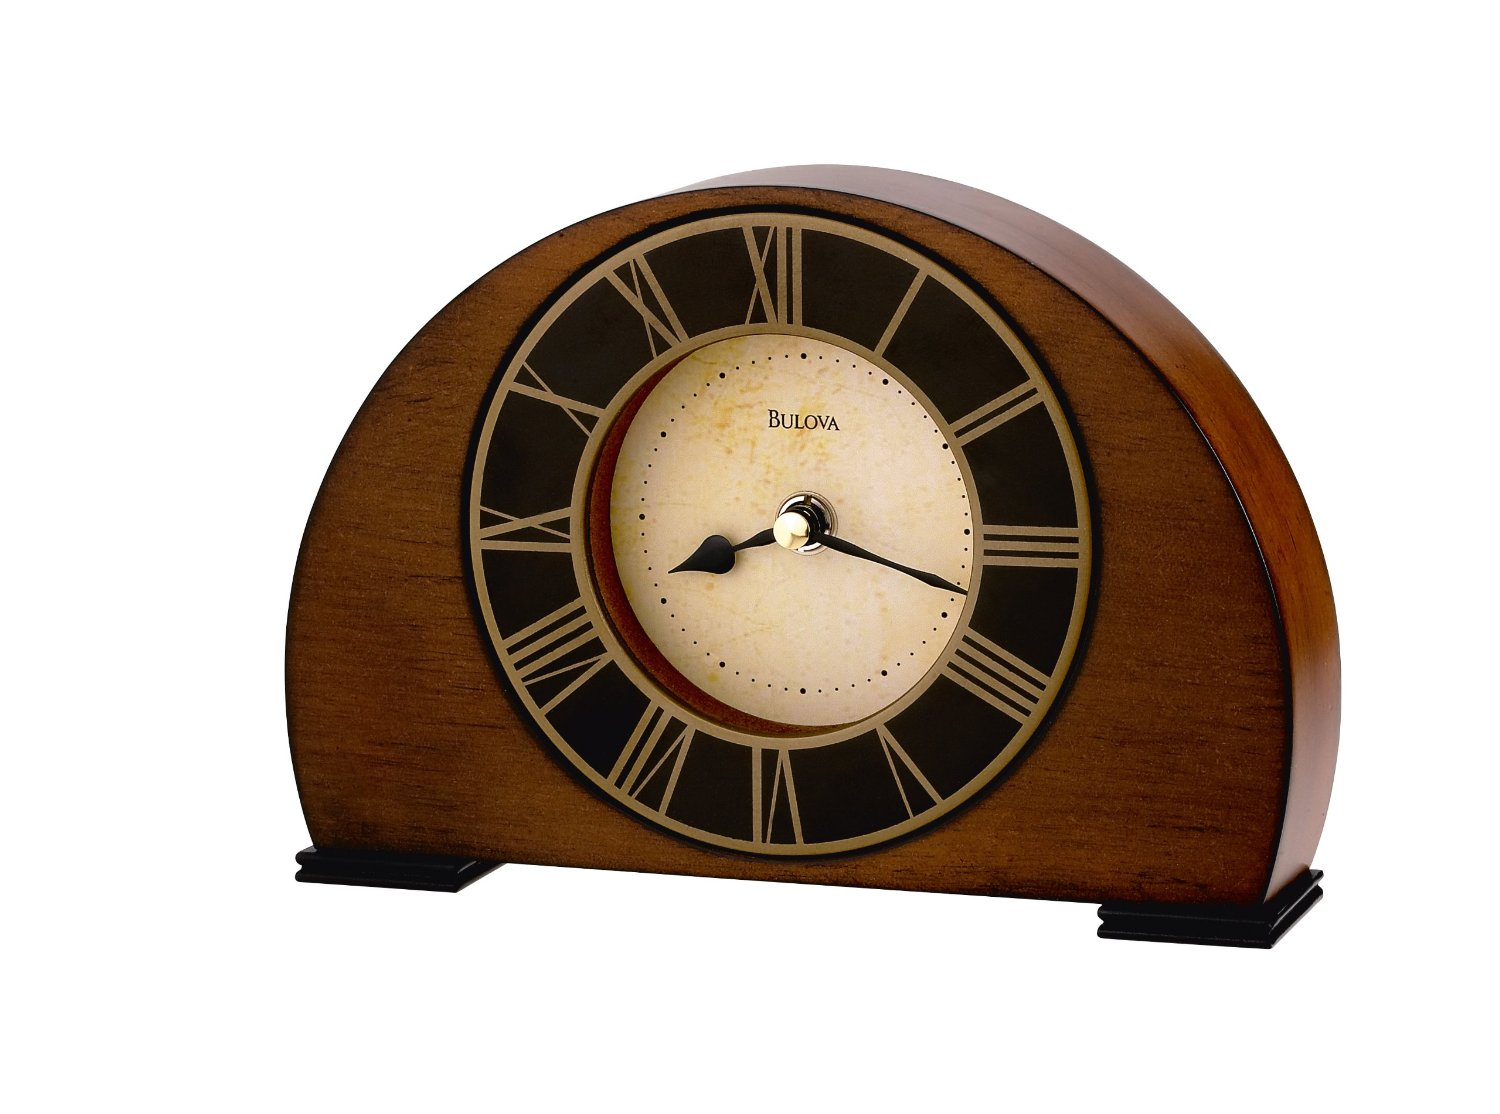 Bulova Mantle Clock | Bulova Mantel Clock | Mantelpiece Clock